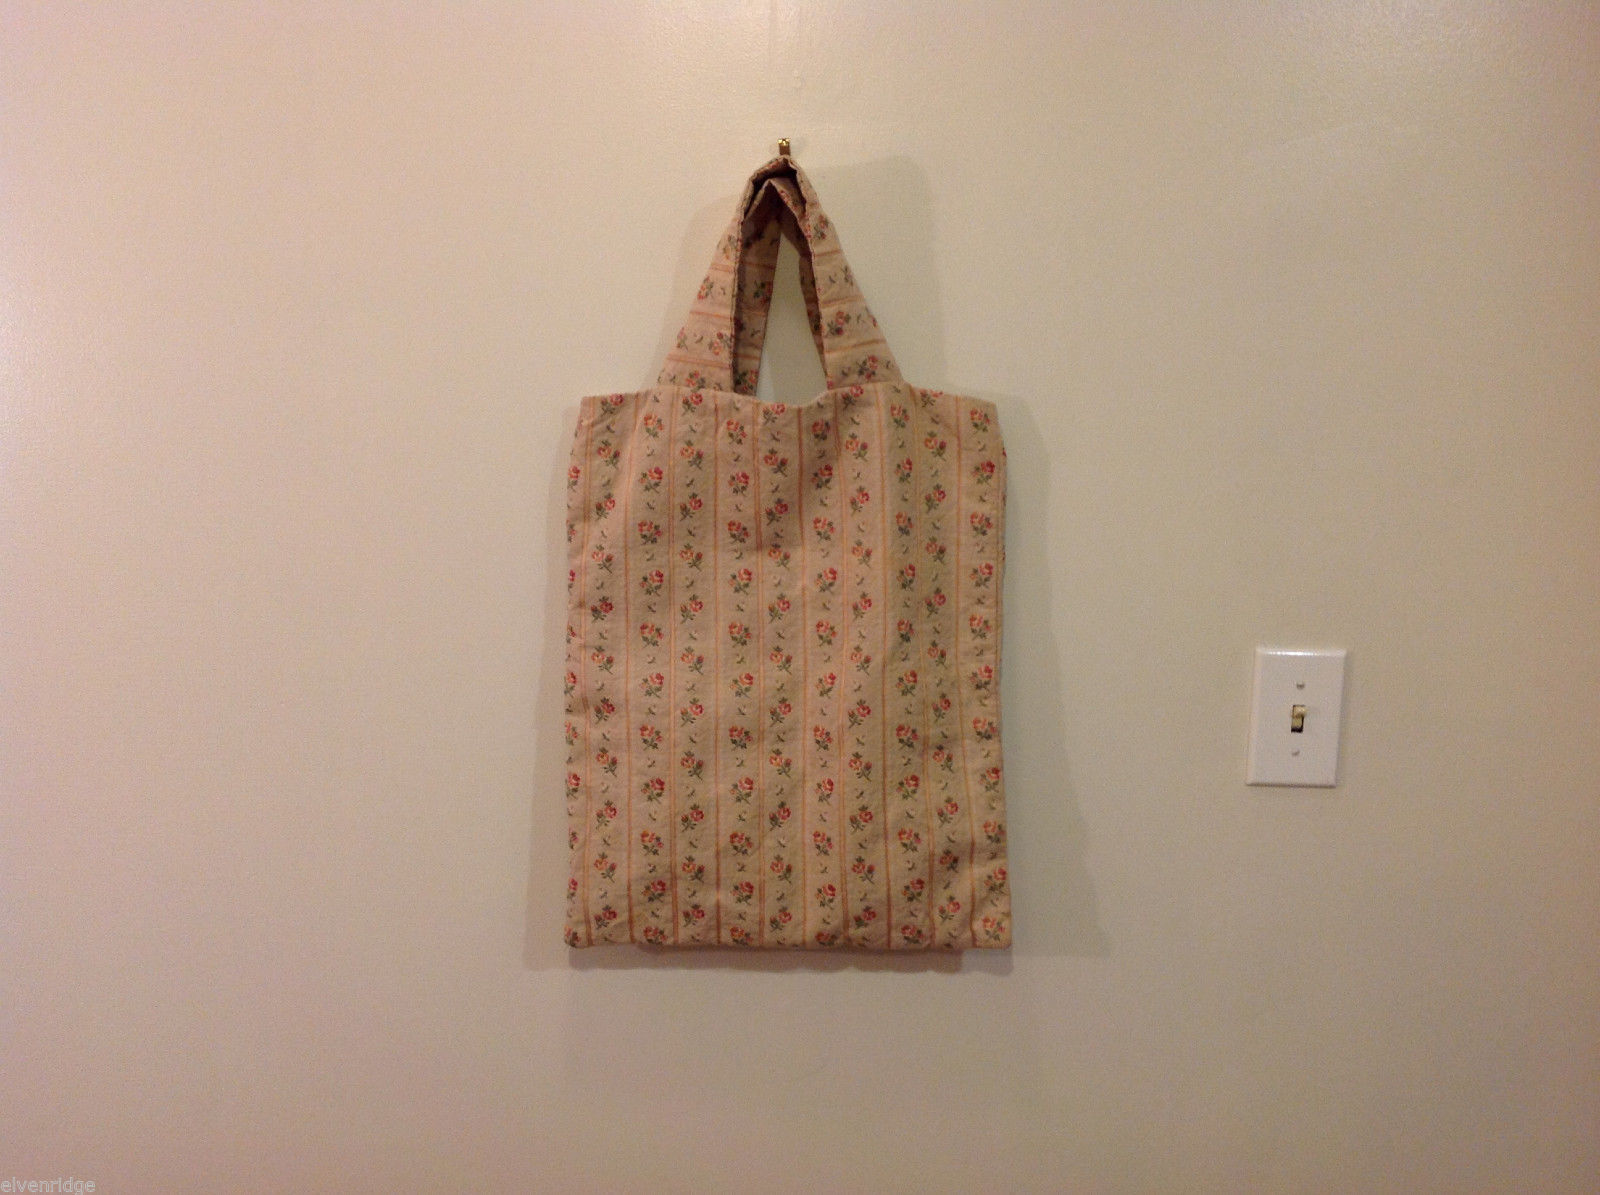 Handmade Cotton-Linen Deep Tote Bag Handbag Beige with Flower pattern, lined